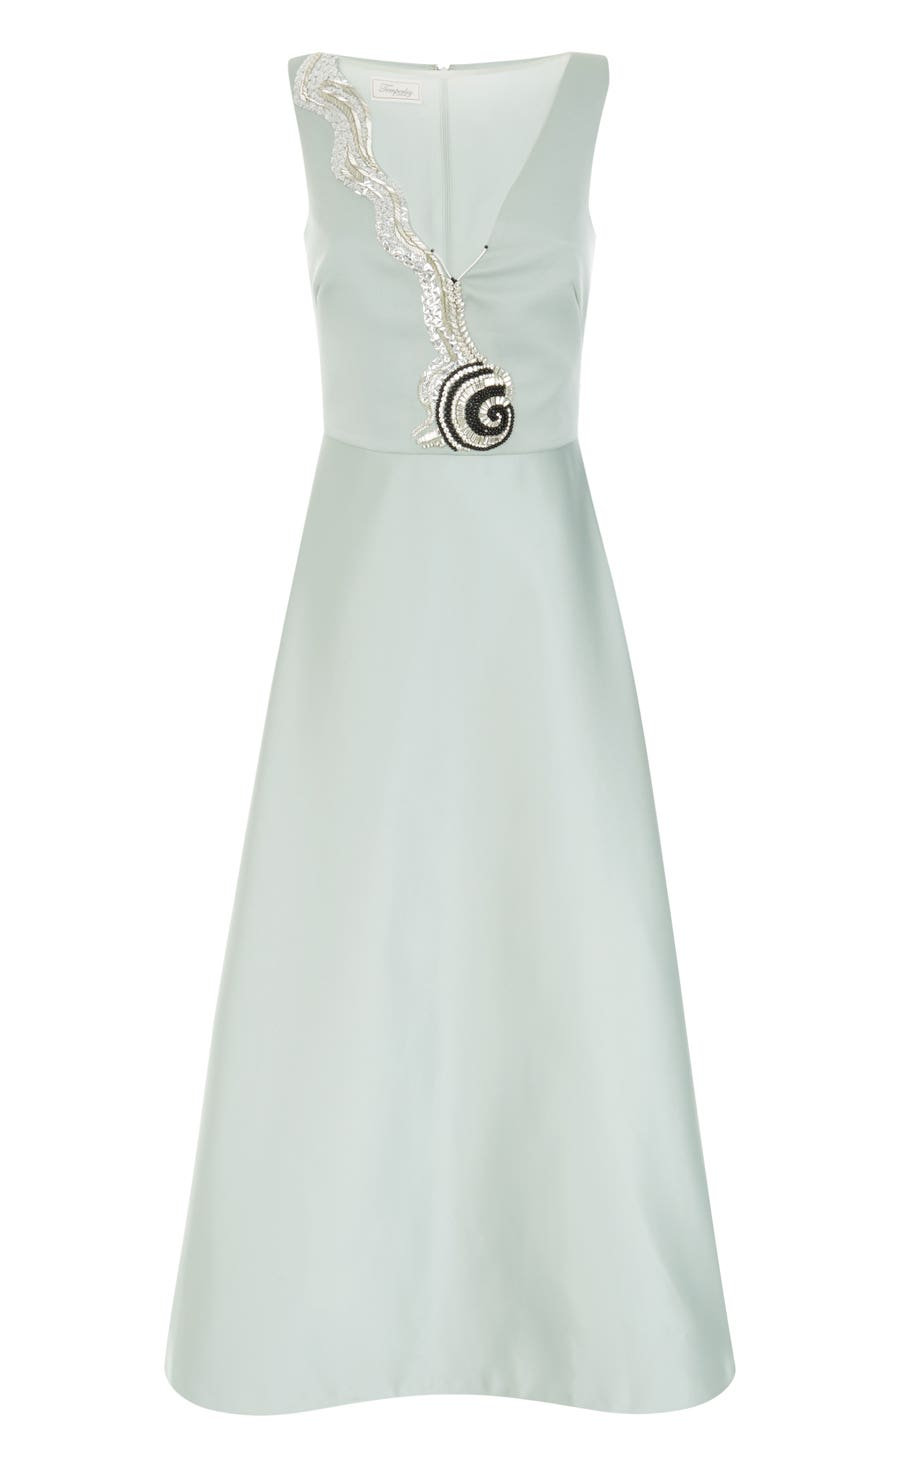 Waterlily Midi Dress, Duck Egg